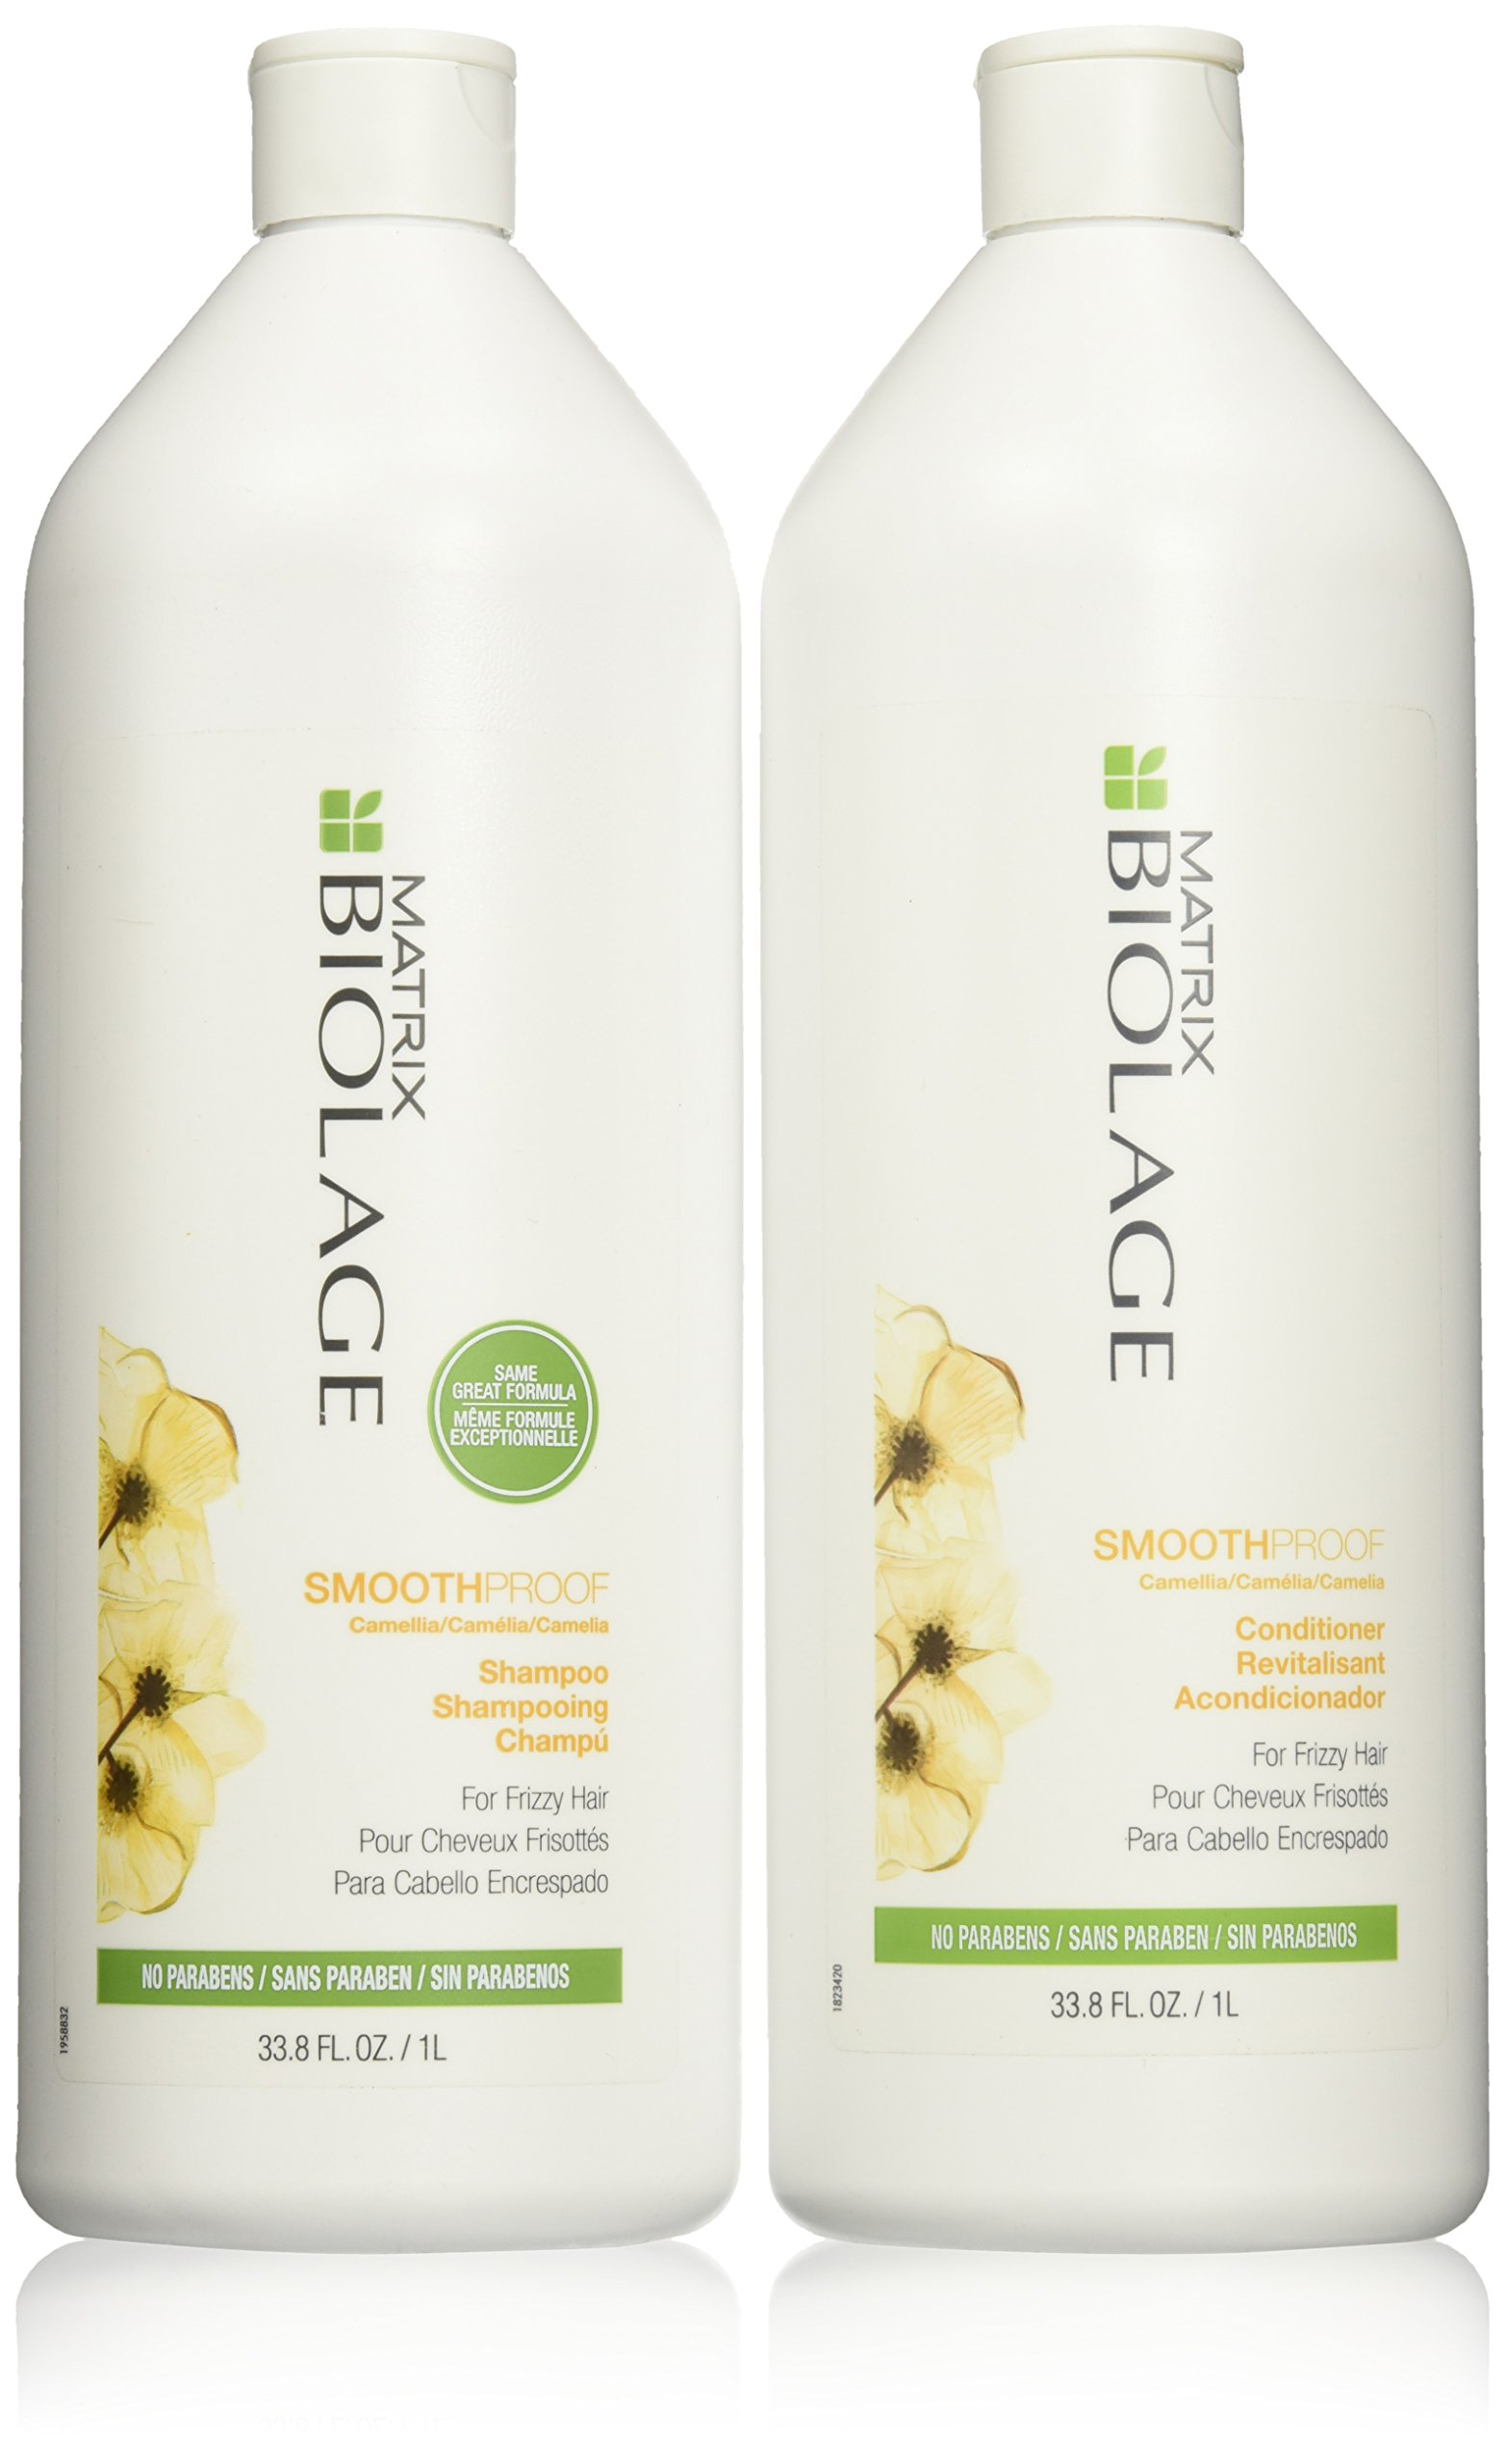 Matrix Biolage Smoothproof Shampoo & Conditioner Liter Duo 33.8 fl oz each